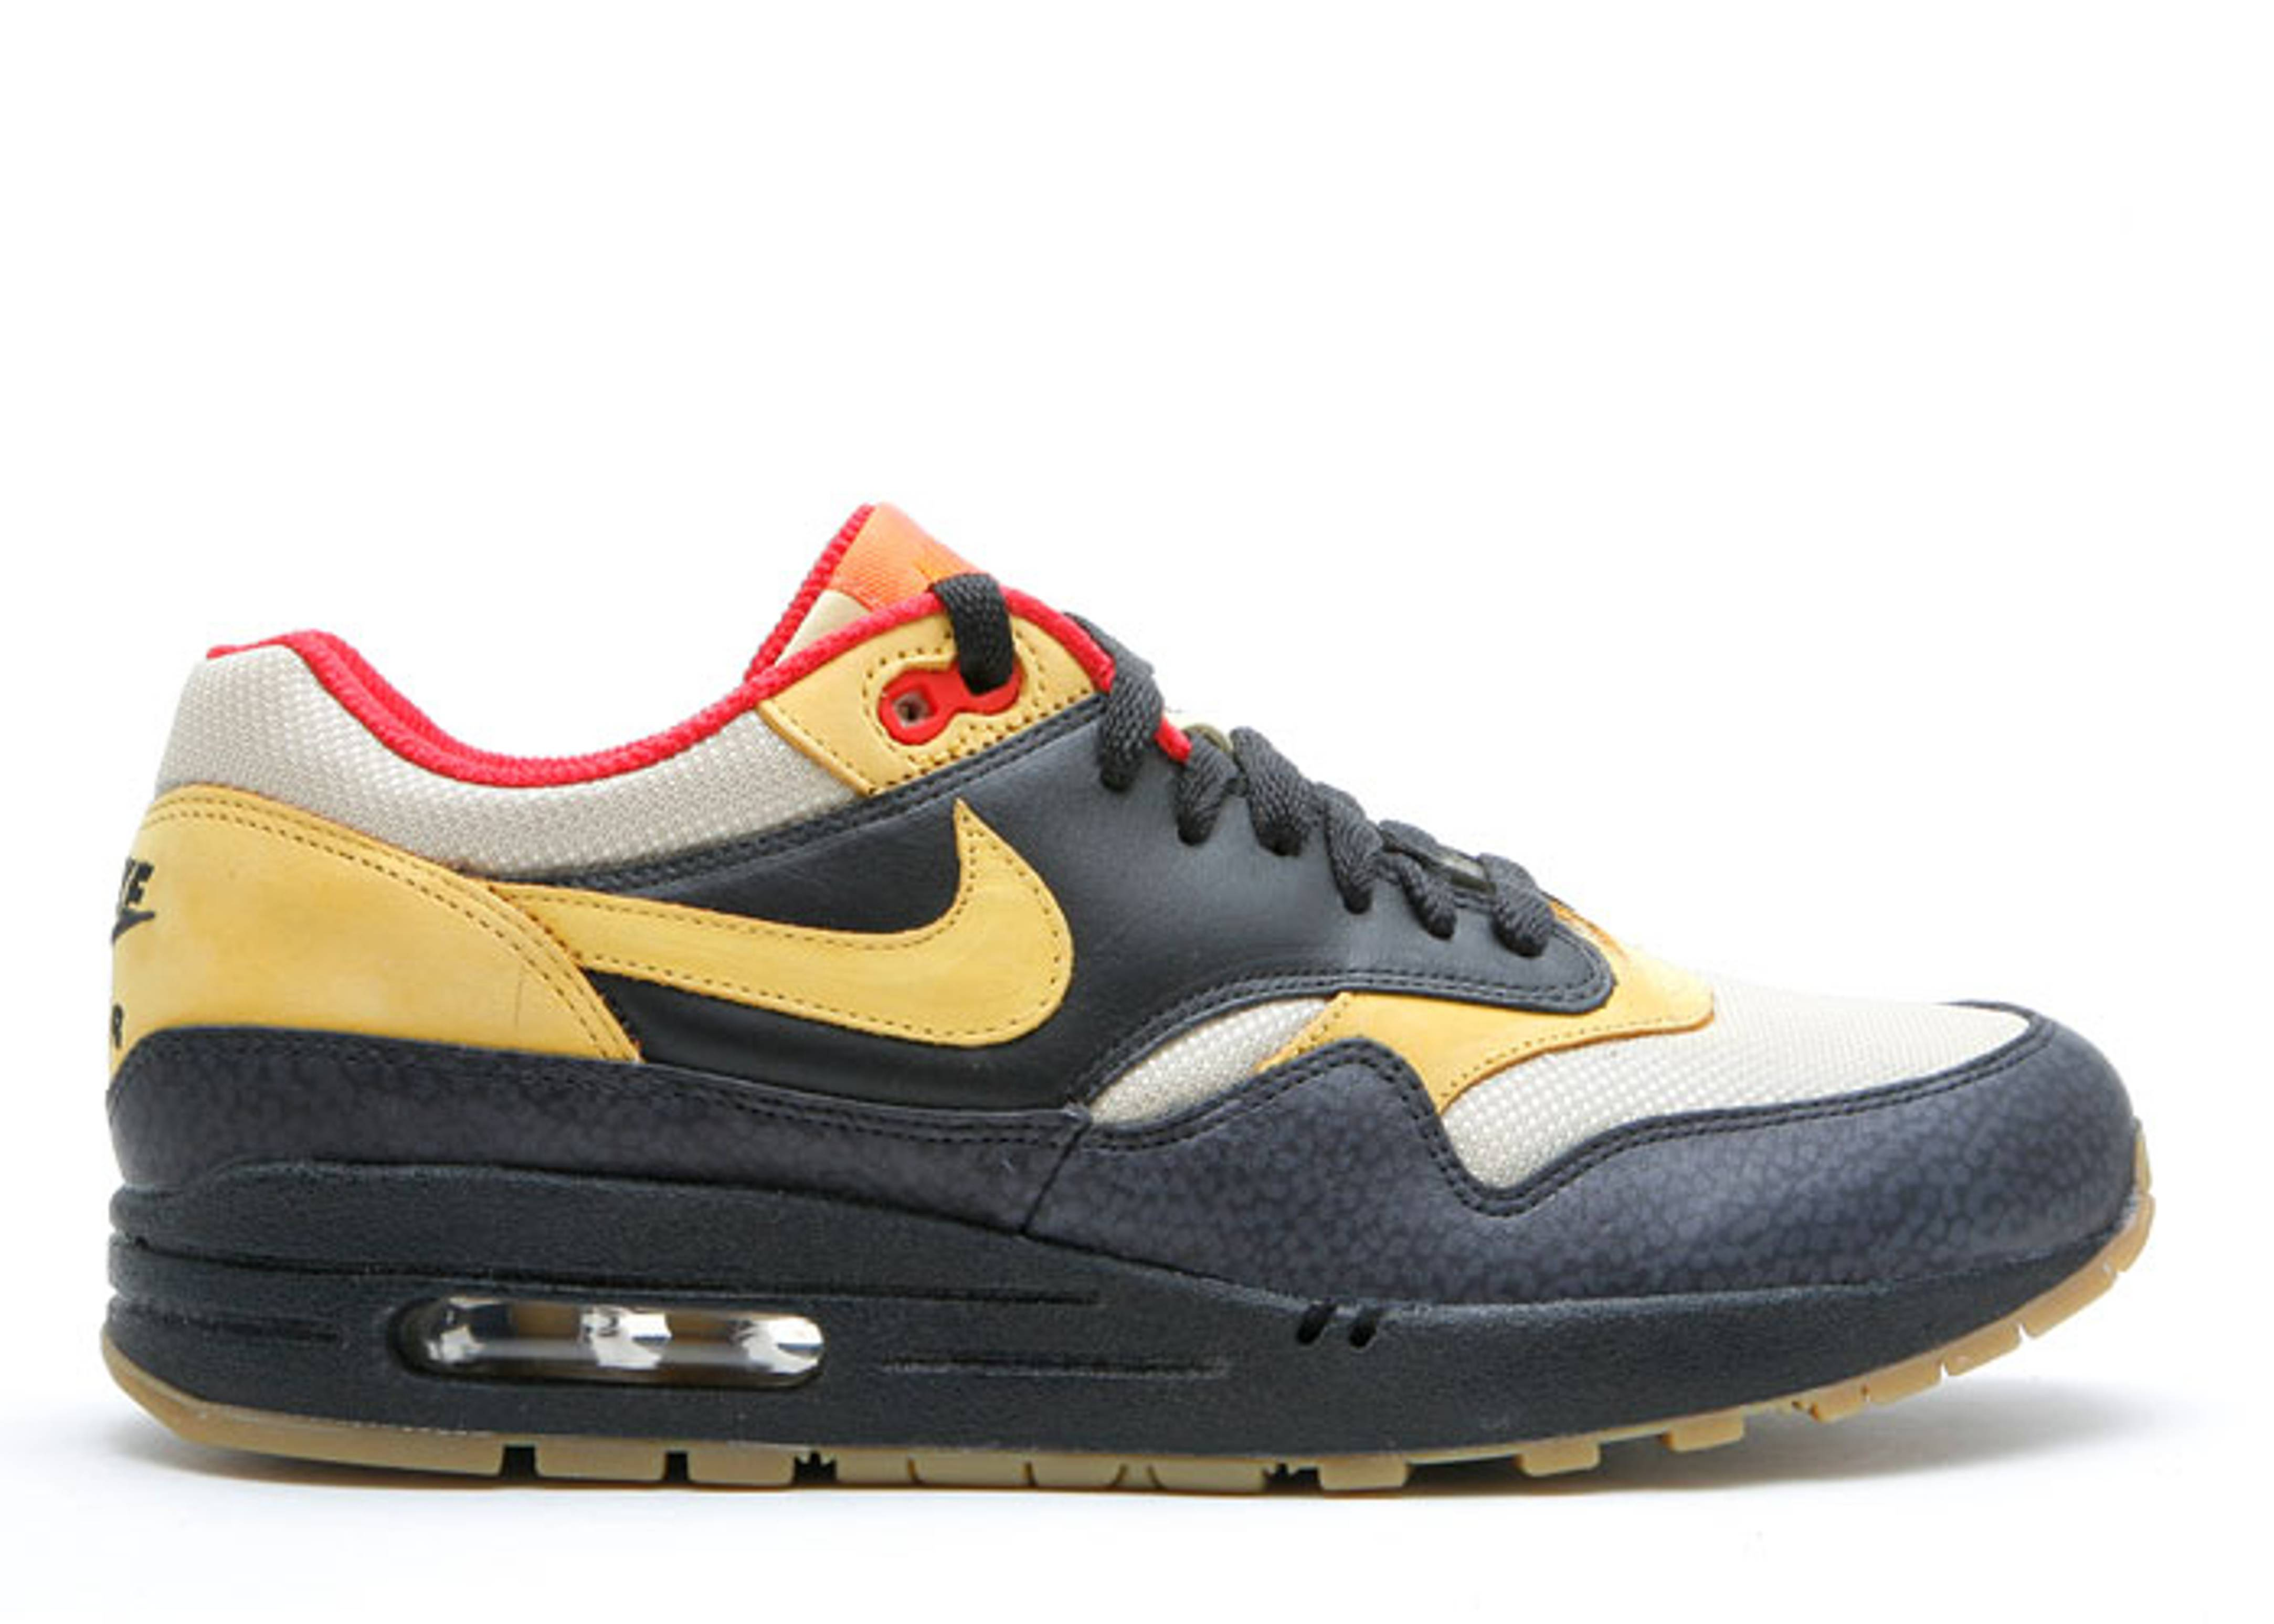 Nike Unisex's Running Shoes Air Max 1 Supreme Black / Yellow Ochre-Gold Dust